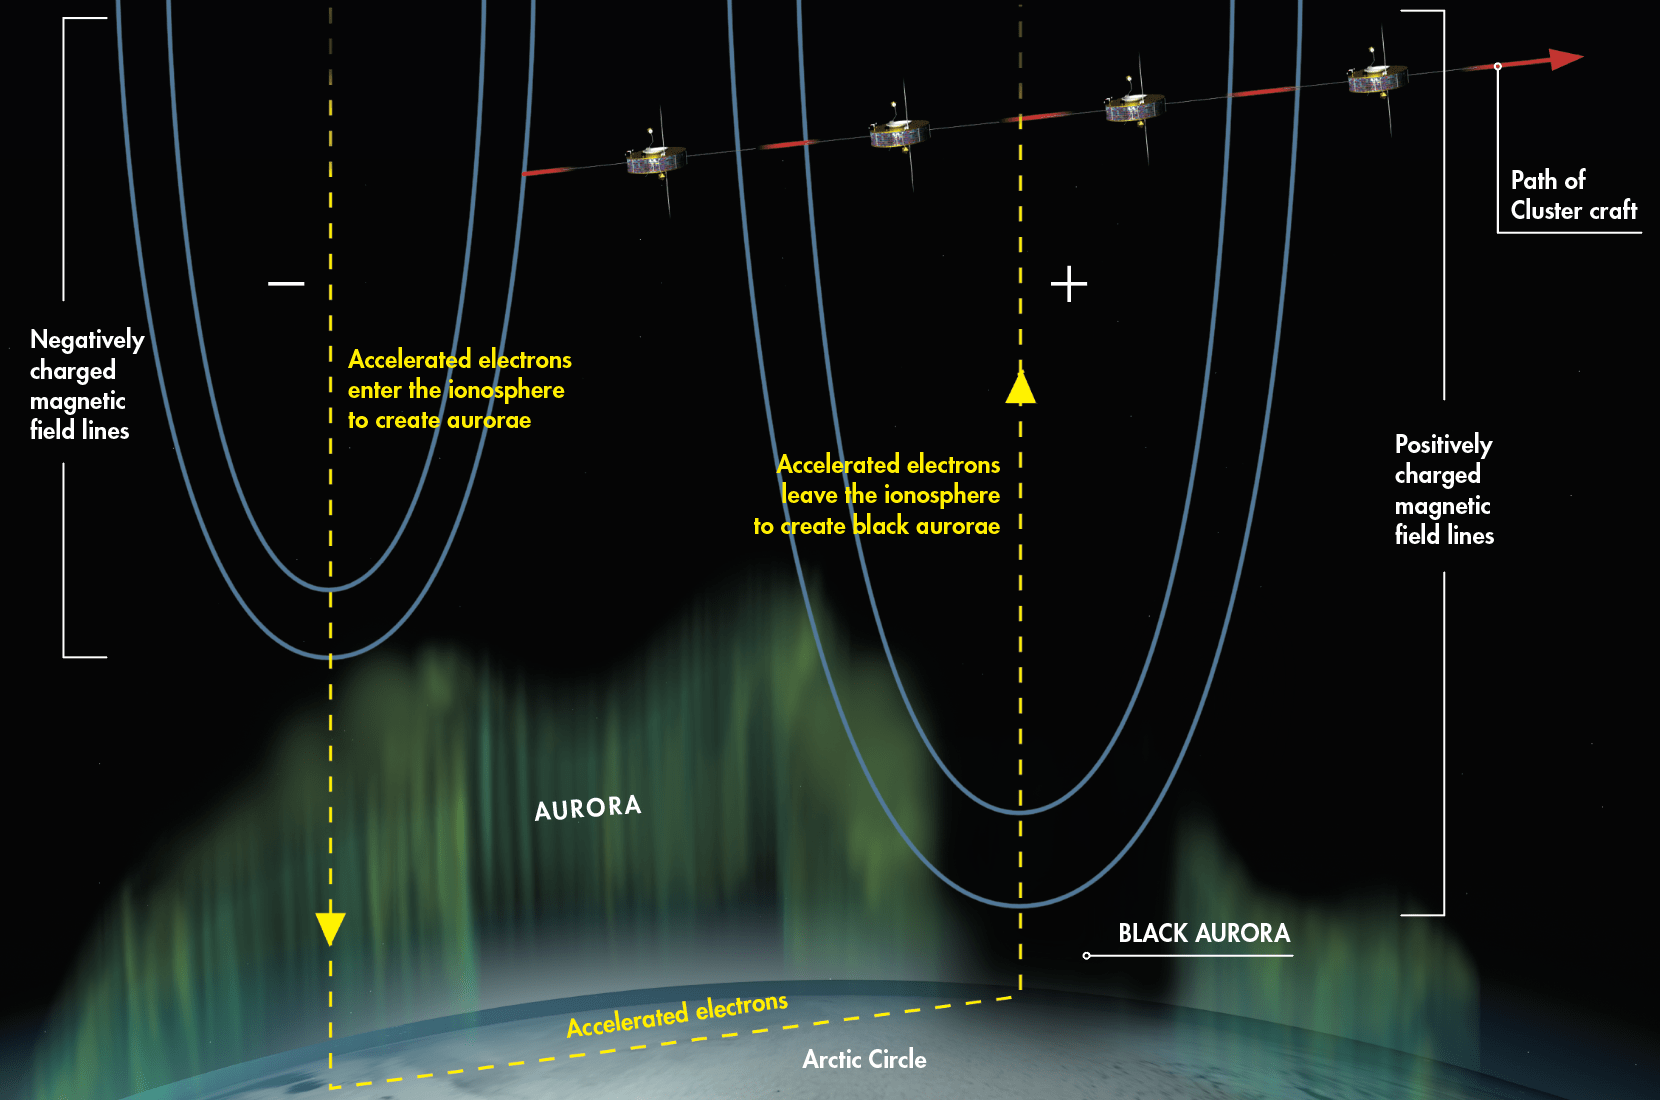 < Cluster detected the black aurora, a type of anti-aurora caused by particles leaving Earth's atmosphere.